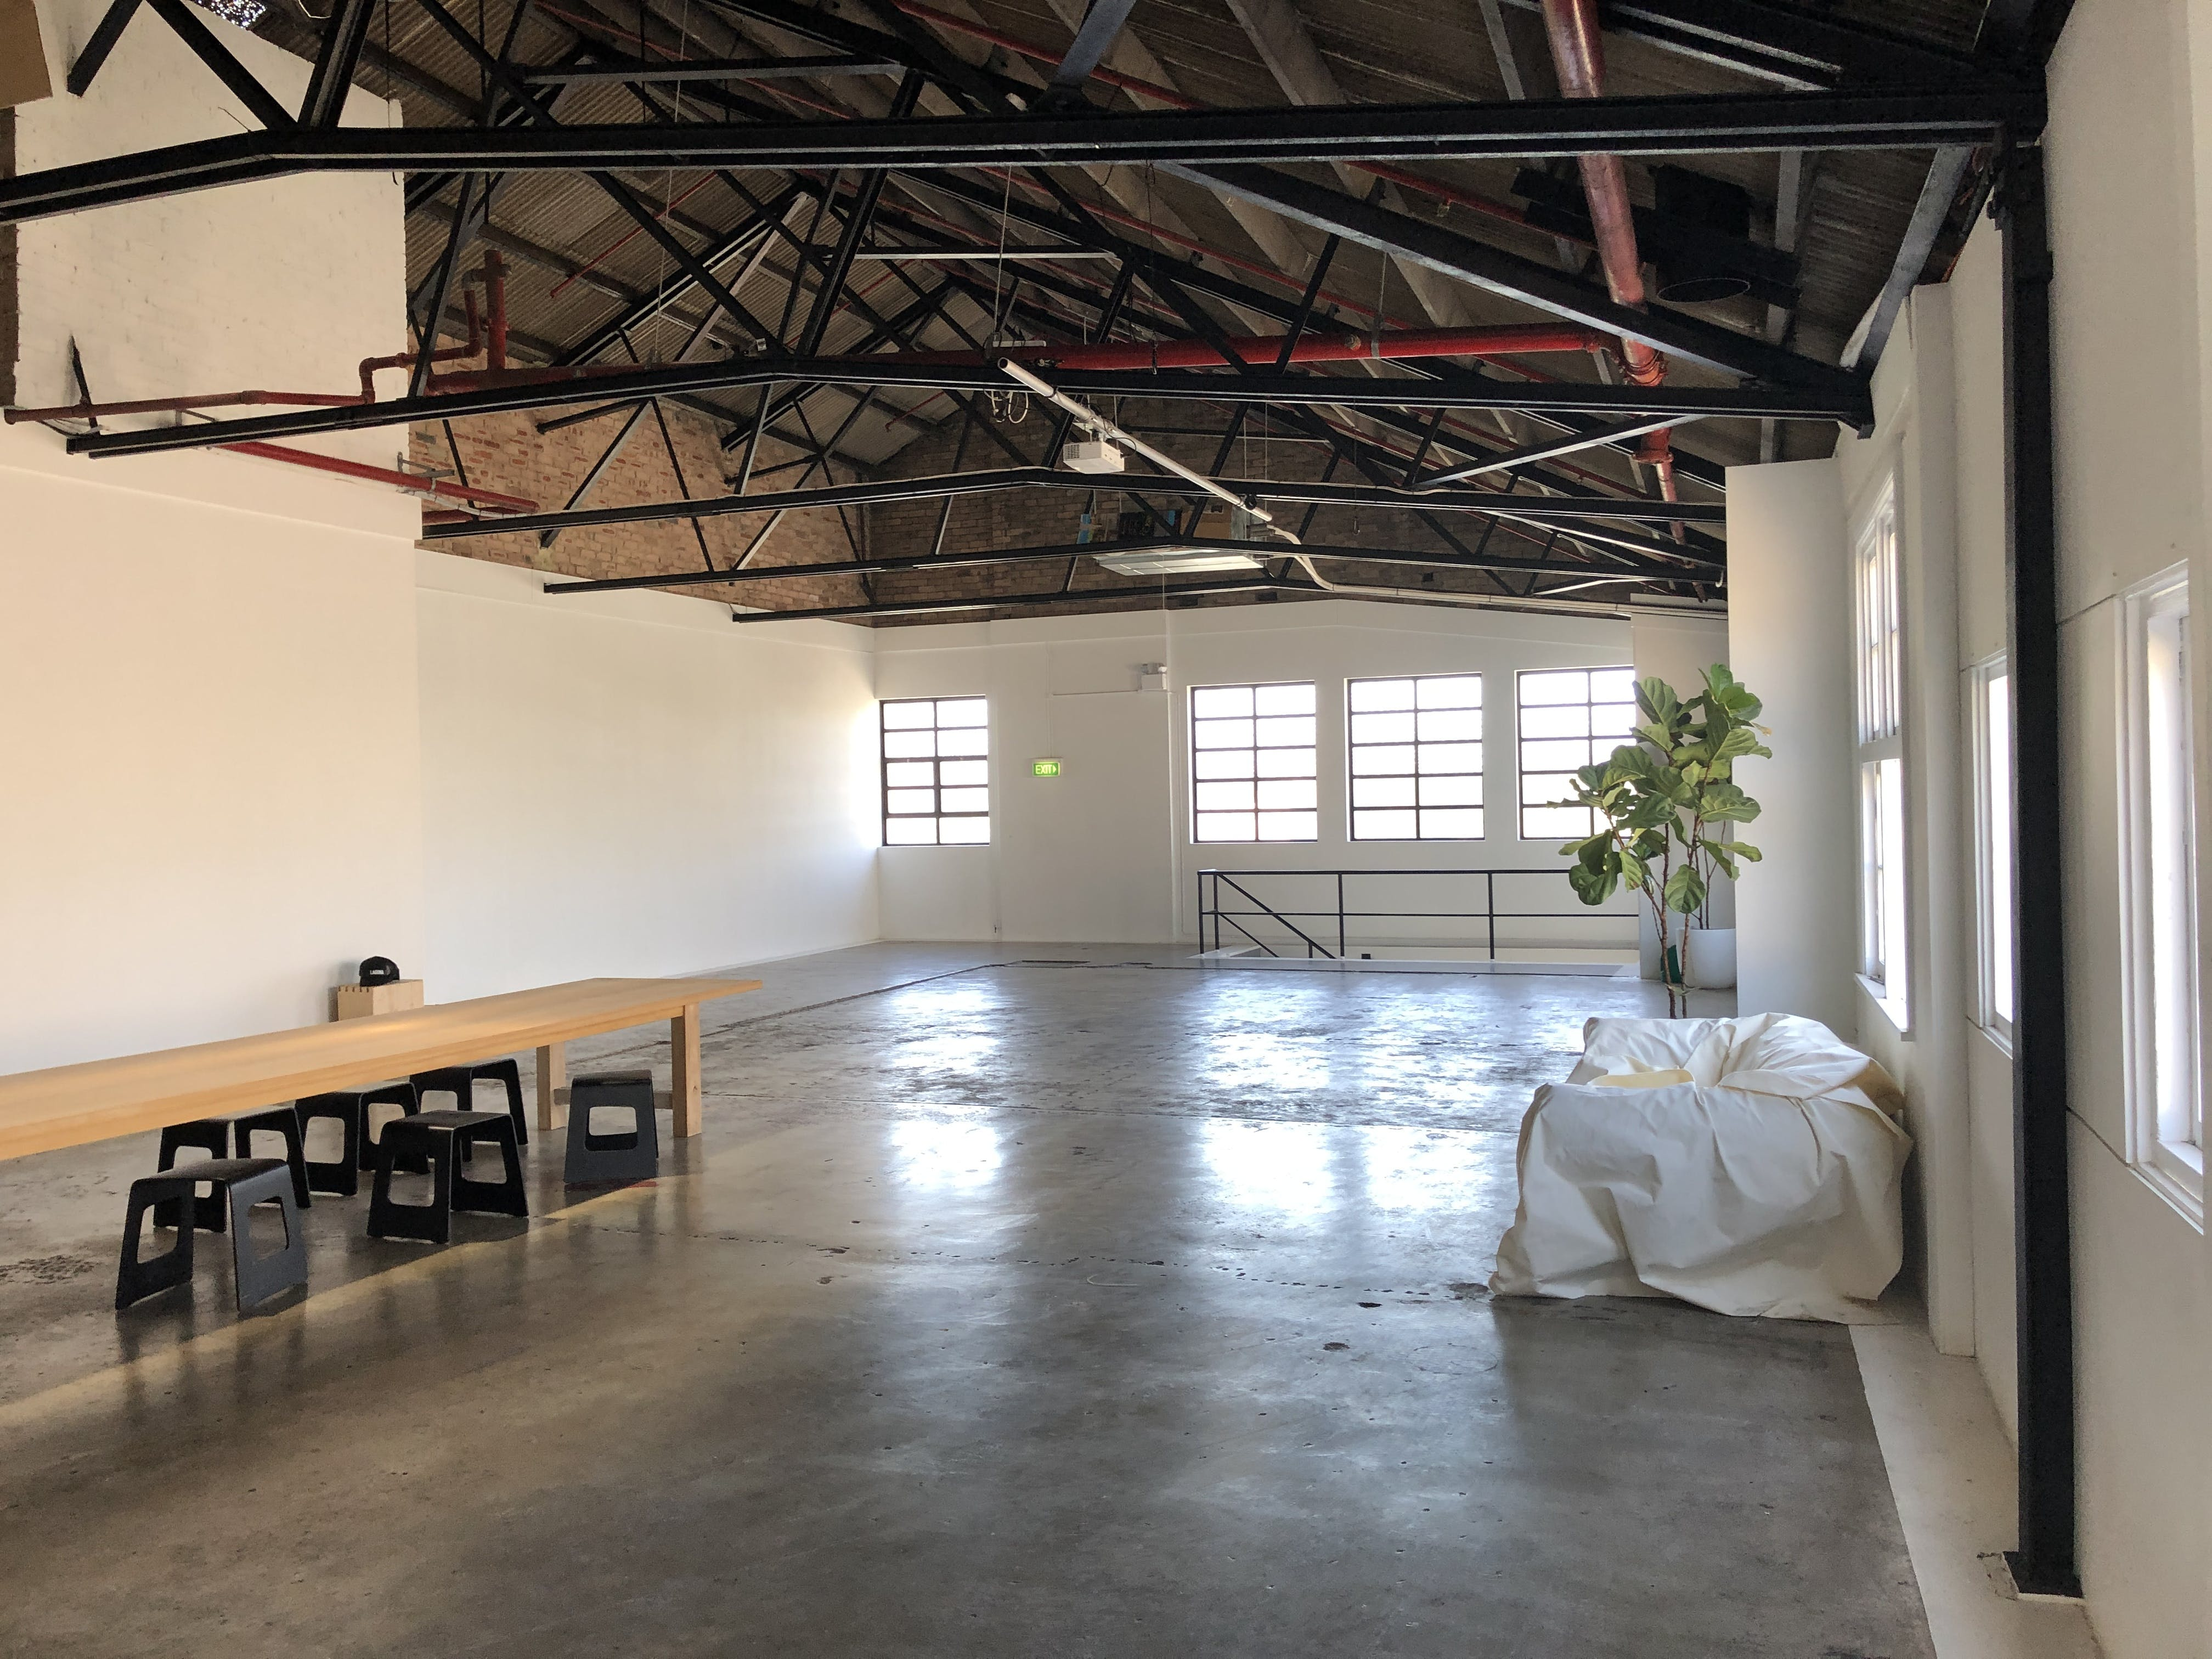 A beautifully lit and spacious warehouse, image 1